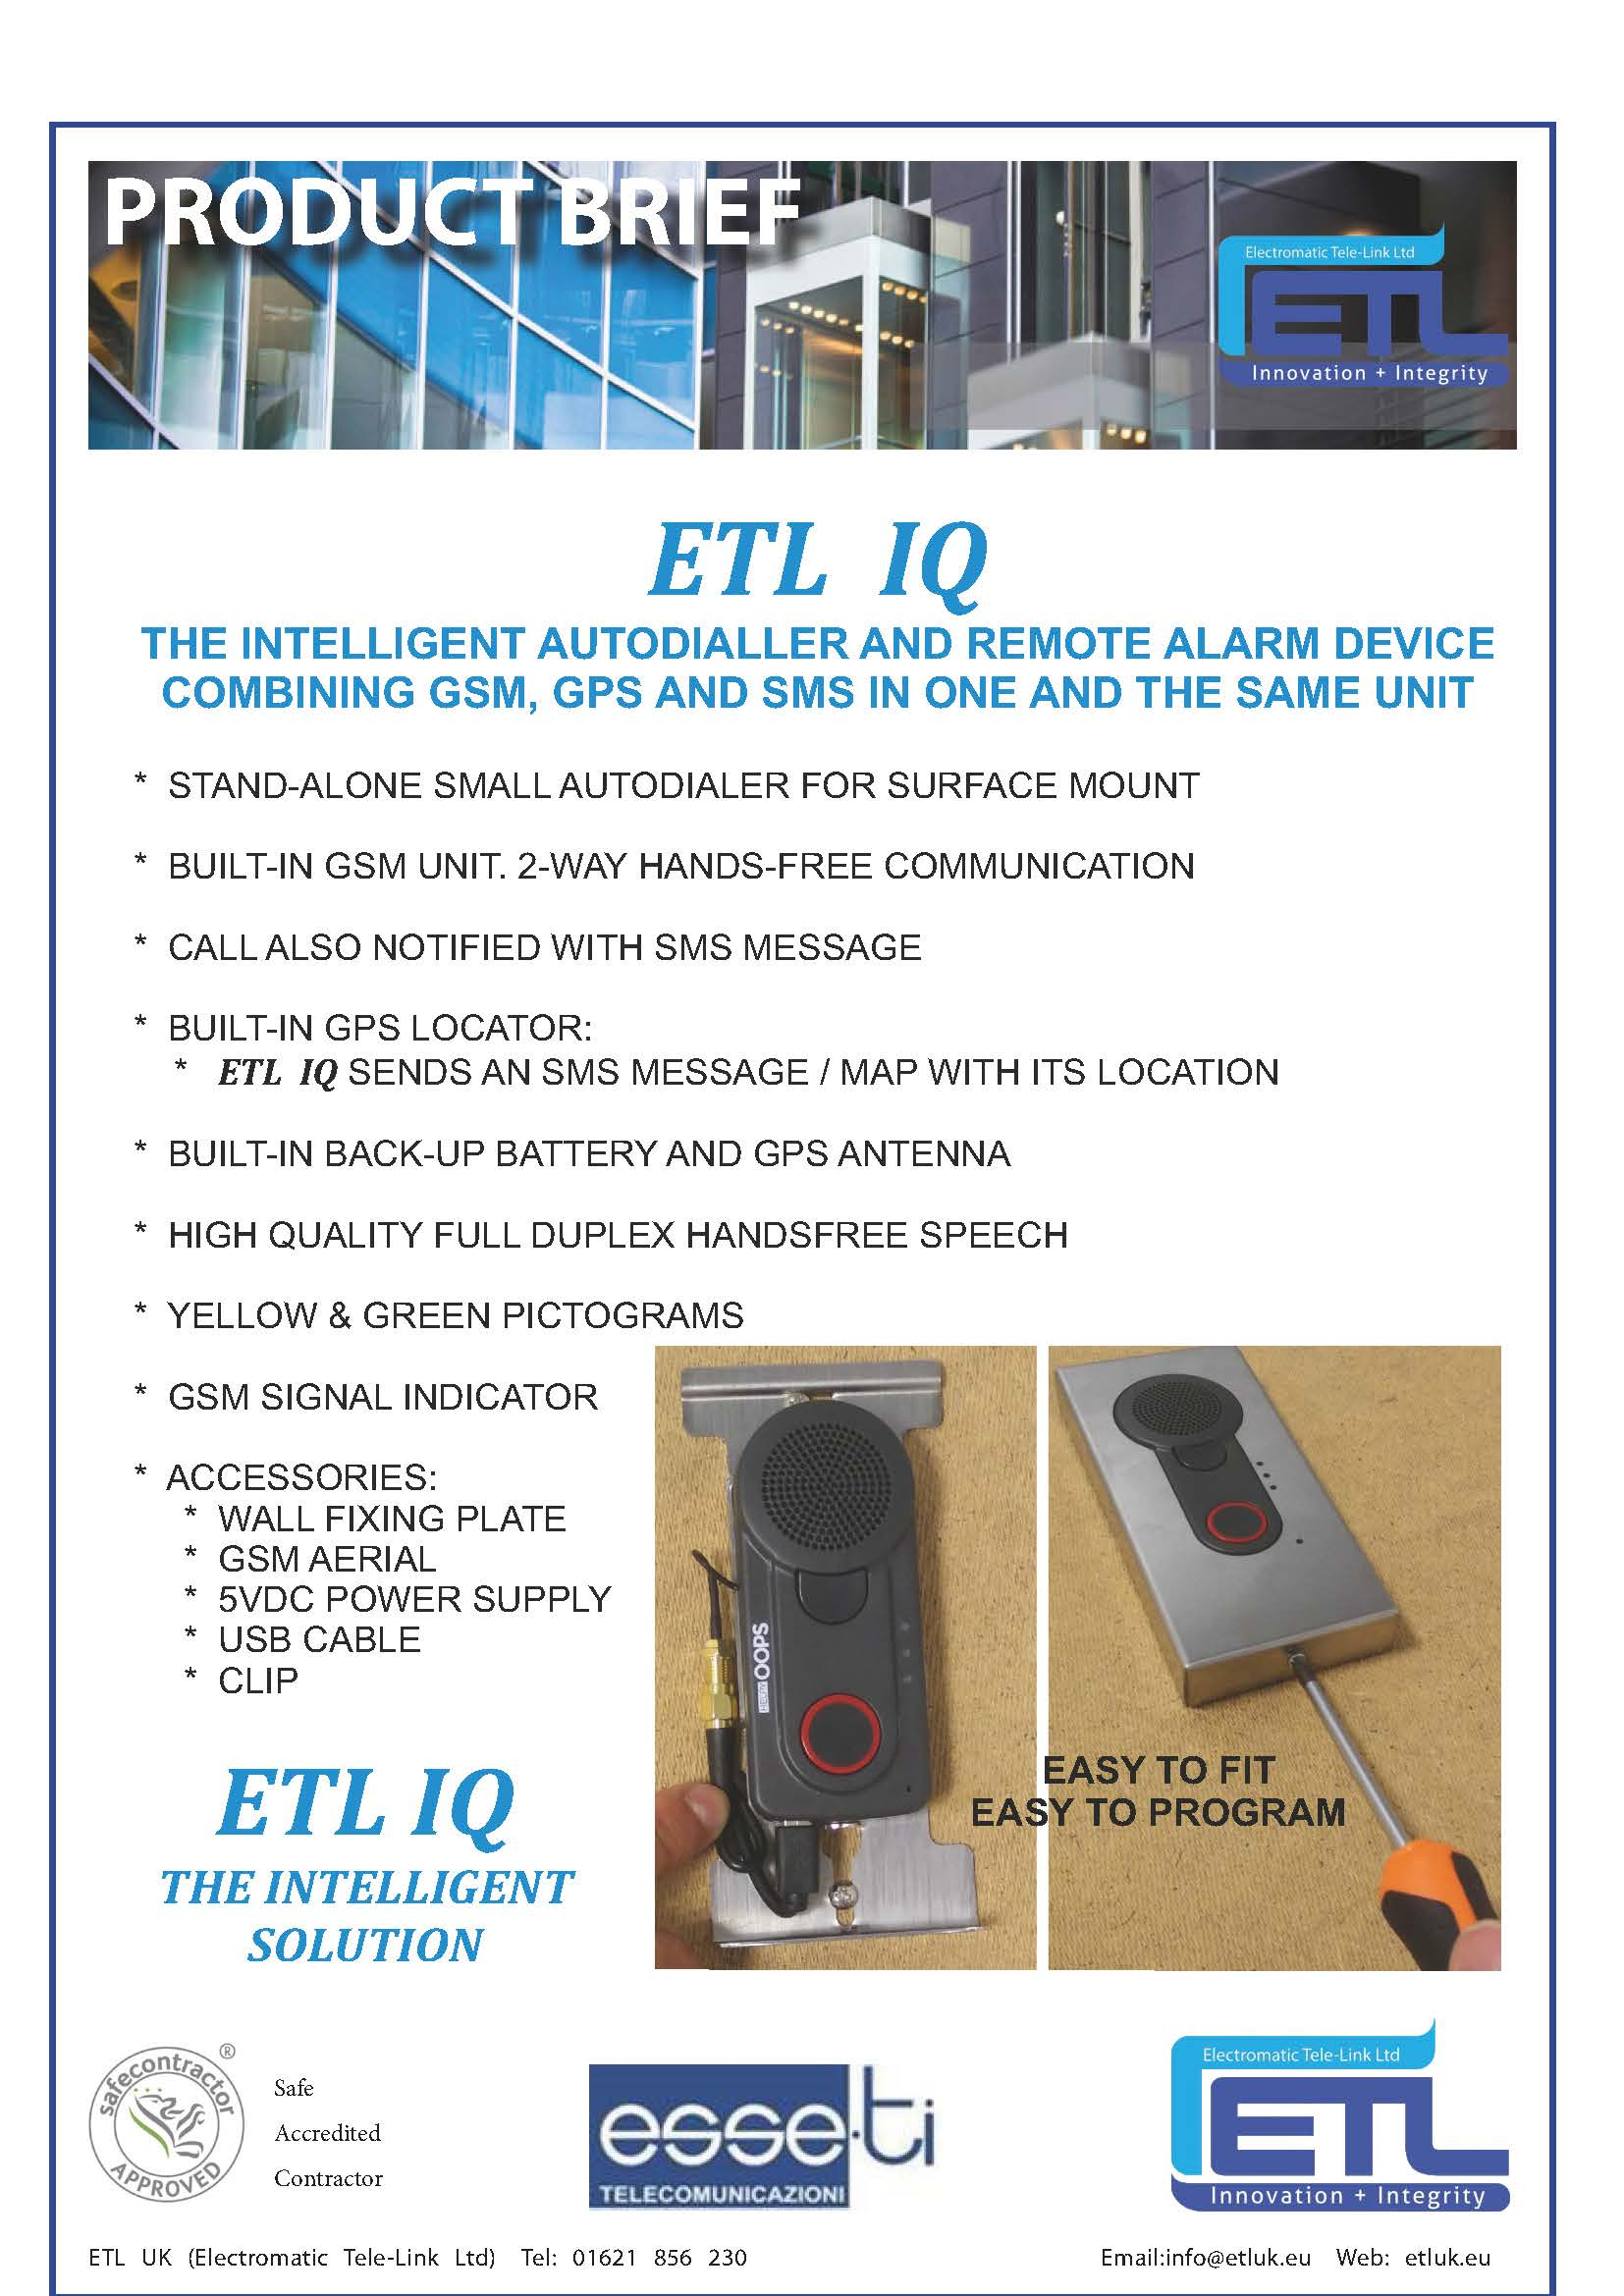 ETL IQ Product Brief